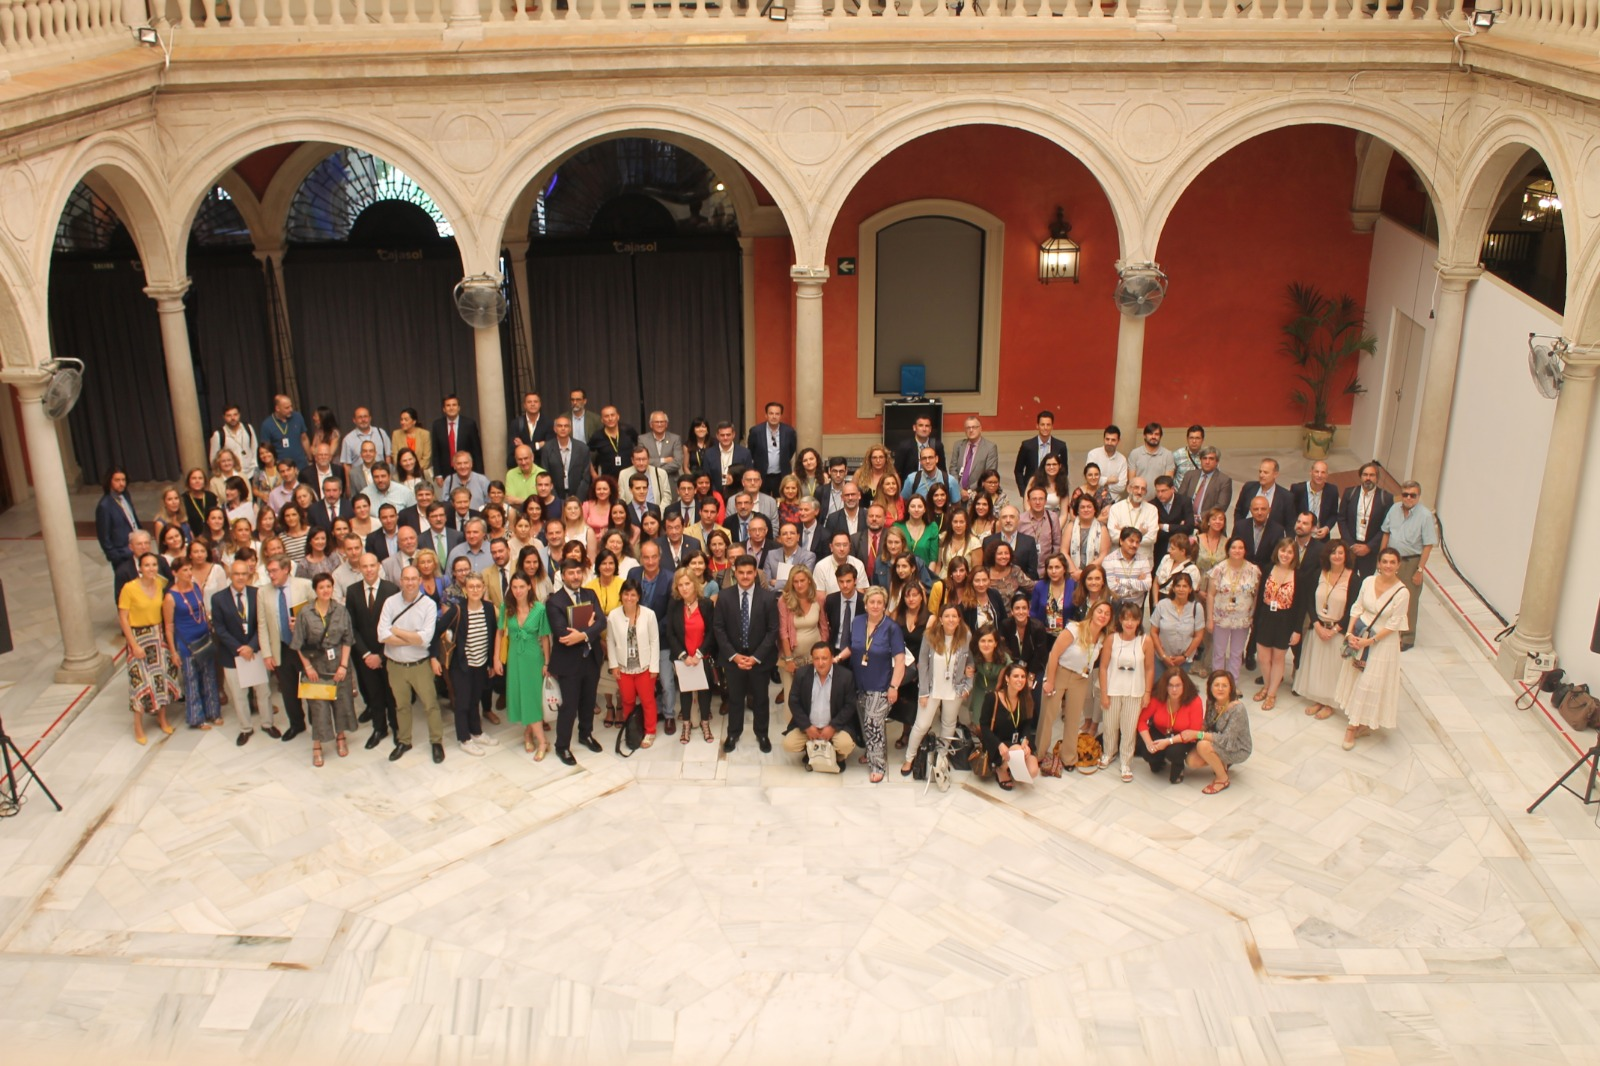 The O-CITY Project was presented at the XXXIII Annual Congress of the European Academy of Business Economics